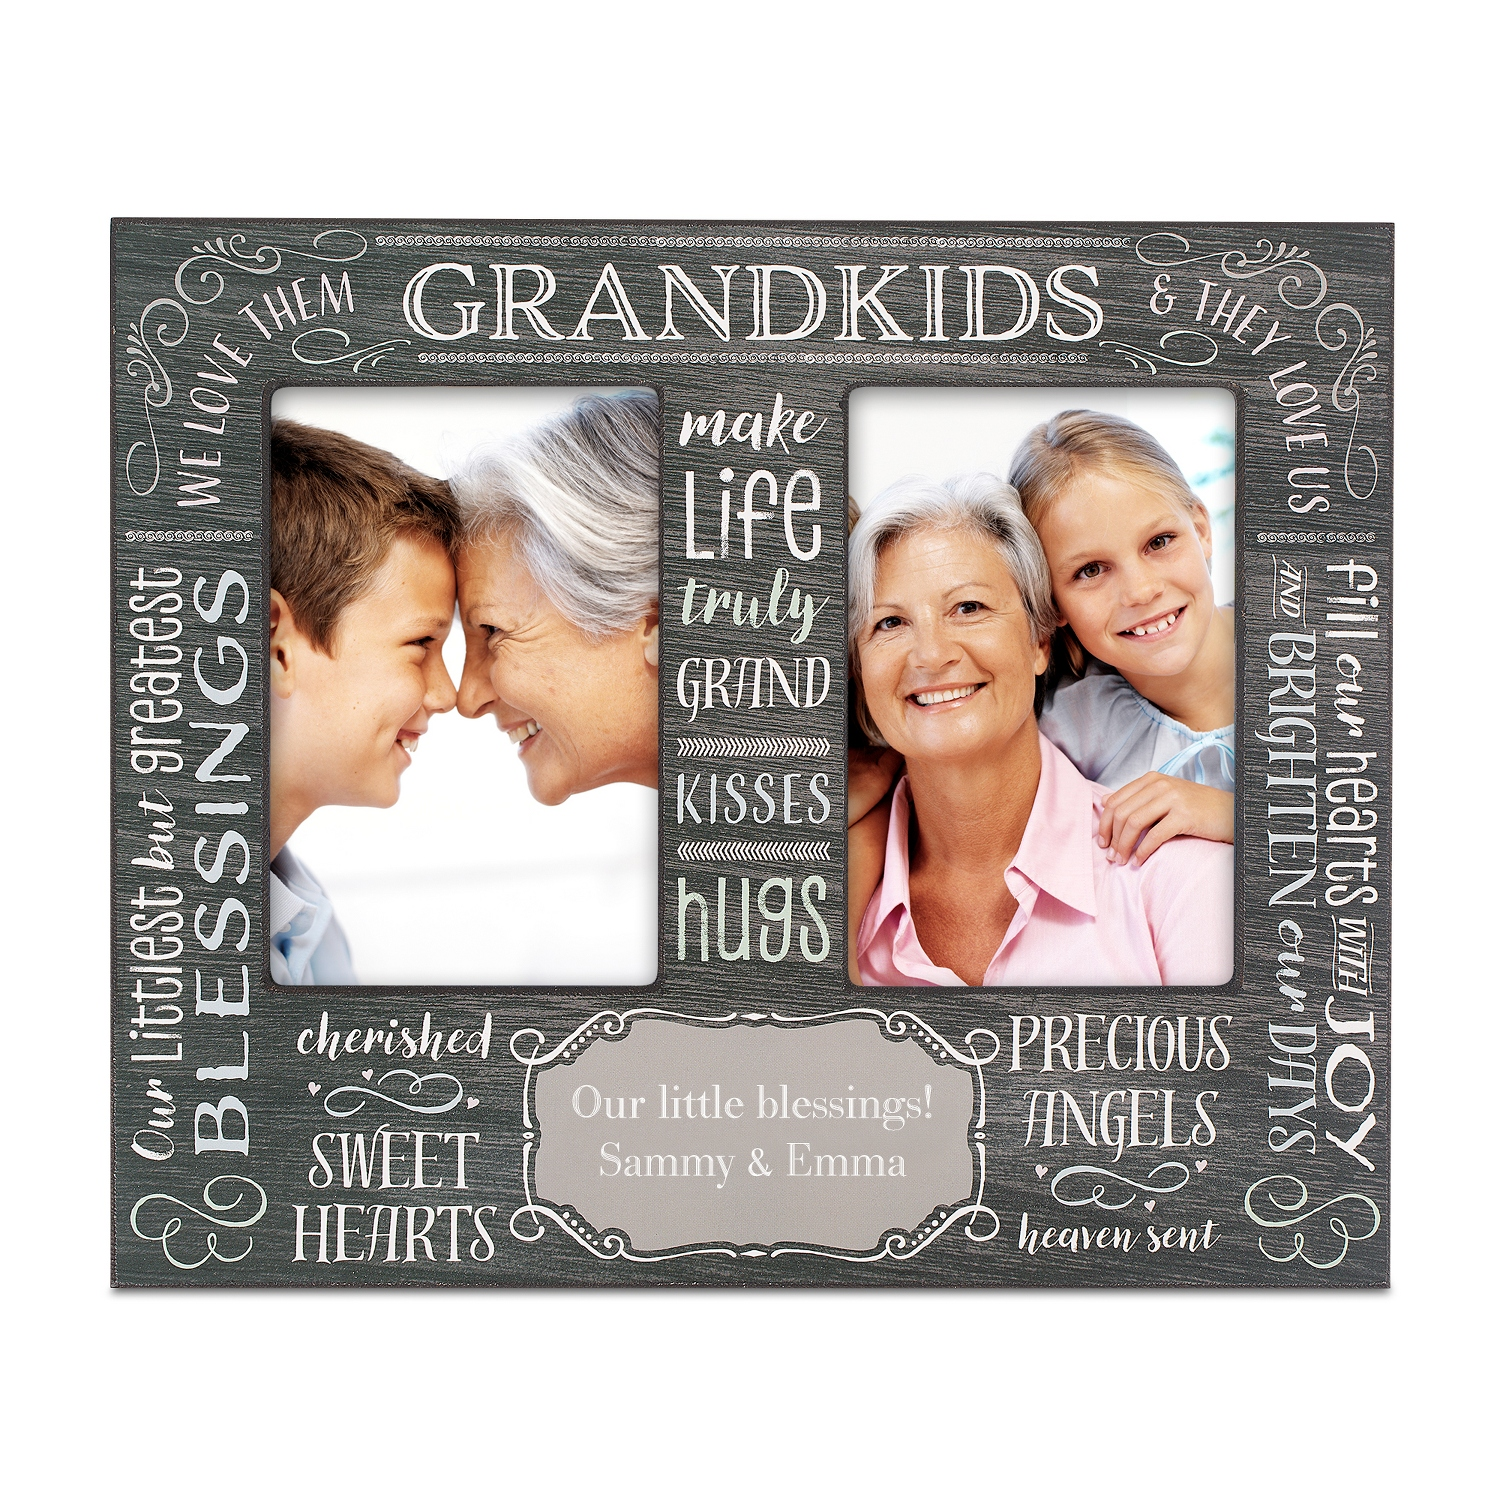 Double Opening Grandkids Frame